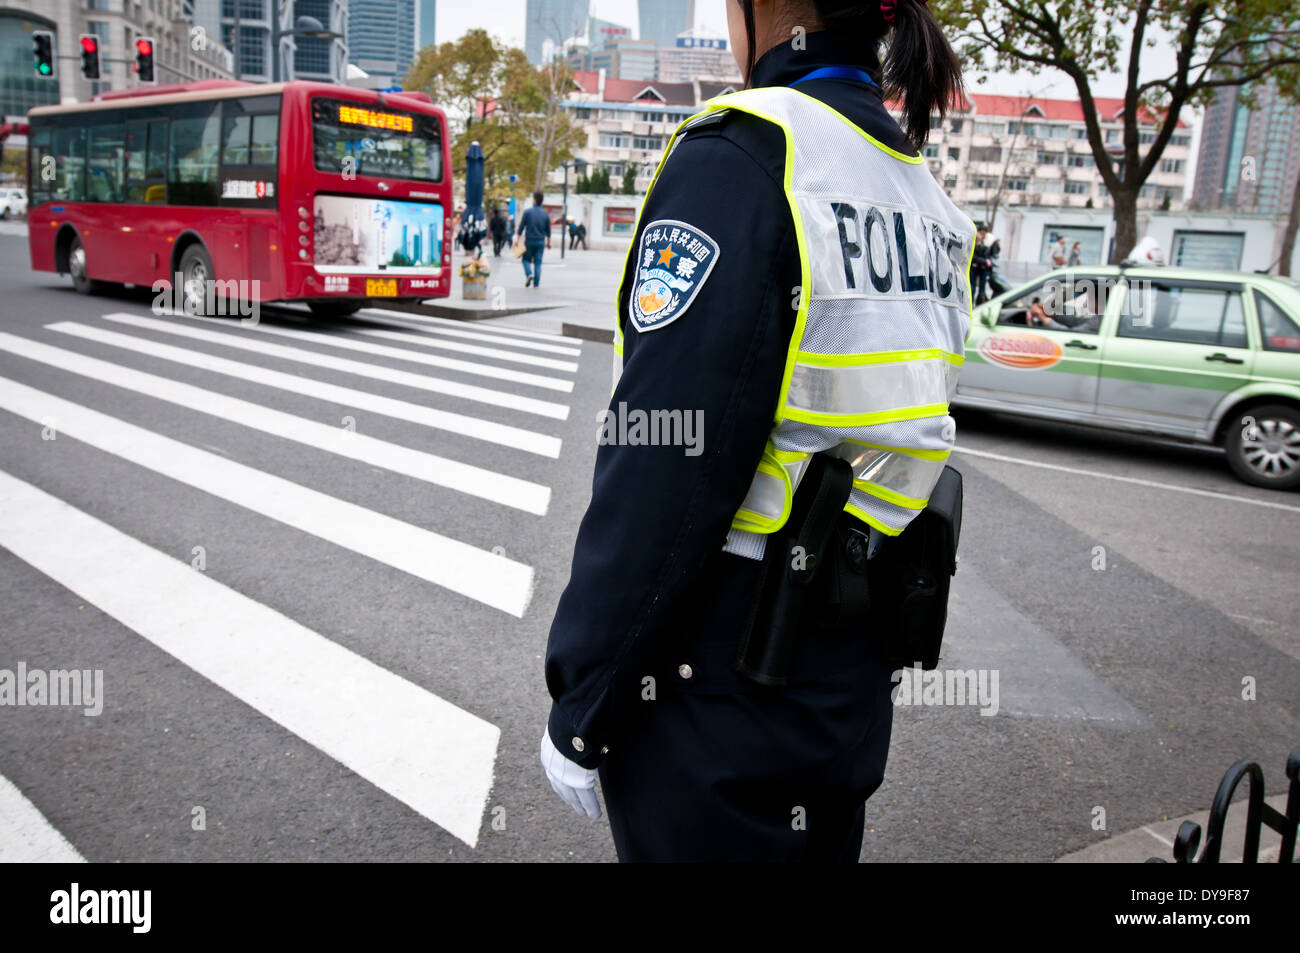 traffic police officer on duty in Shanghai, China - Stock Image